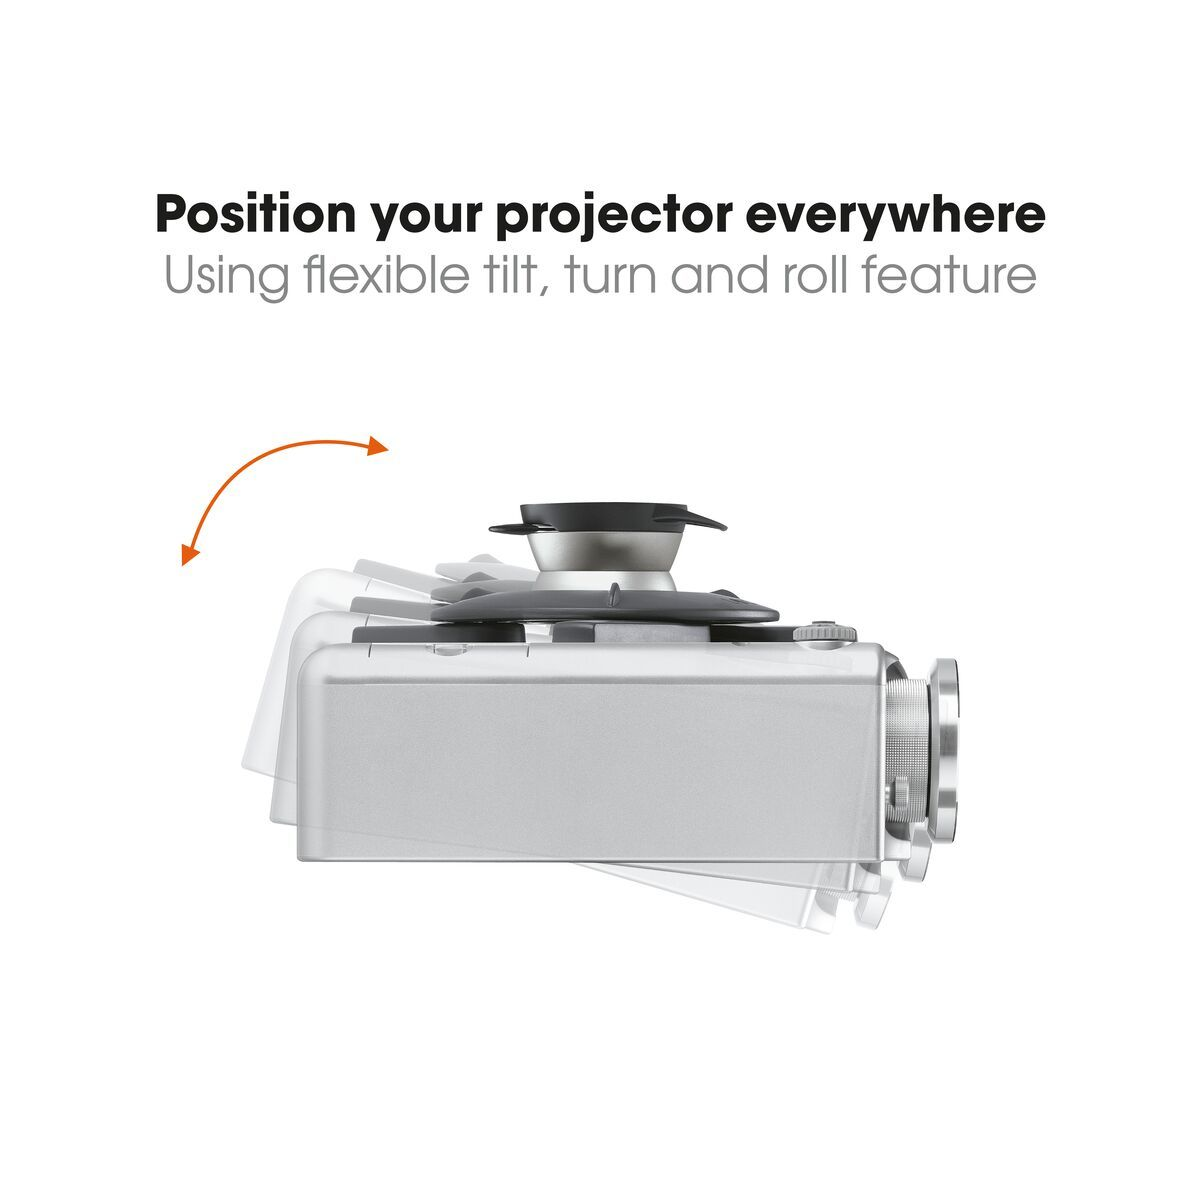 Vogel's EPC 6545 Projector Ceiling Mount - Max. weight load: 10 - Max. weight load: USP